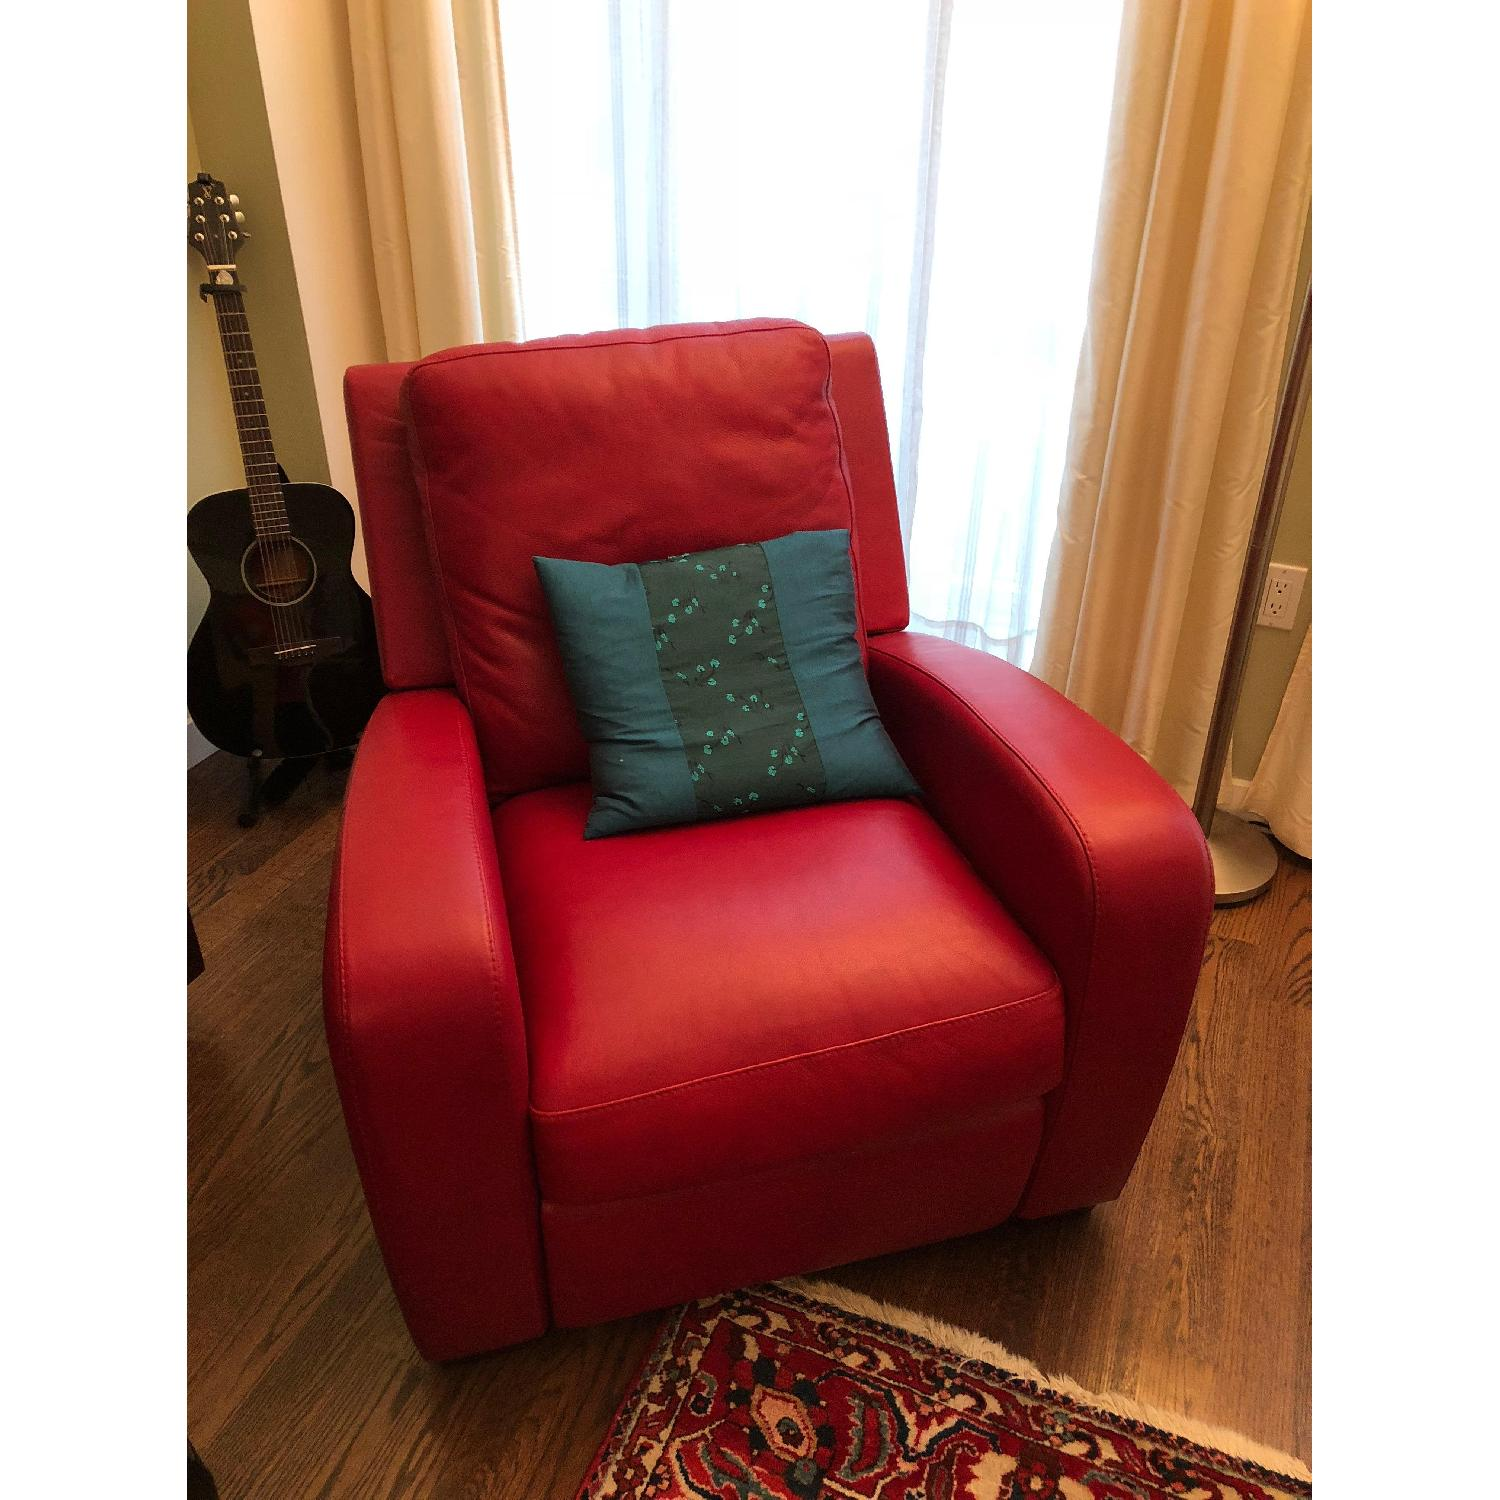 Crate & Barrel Leather Recliner in Red-4